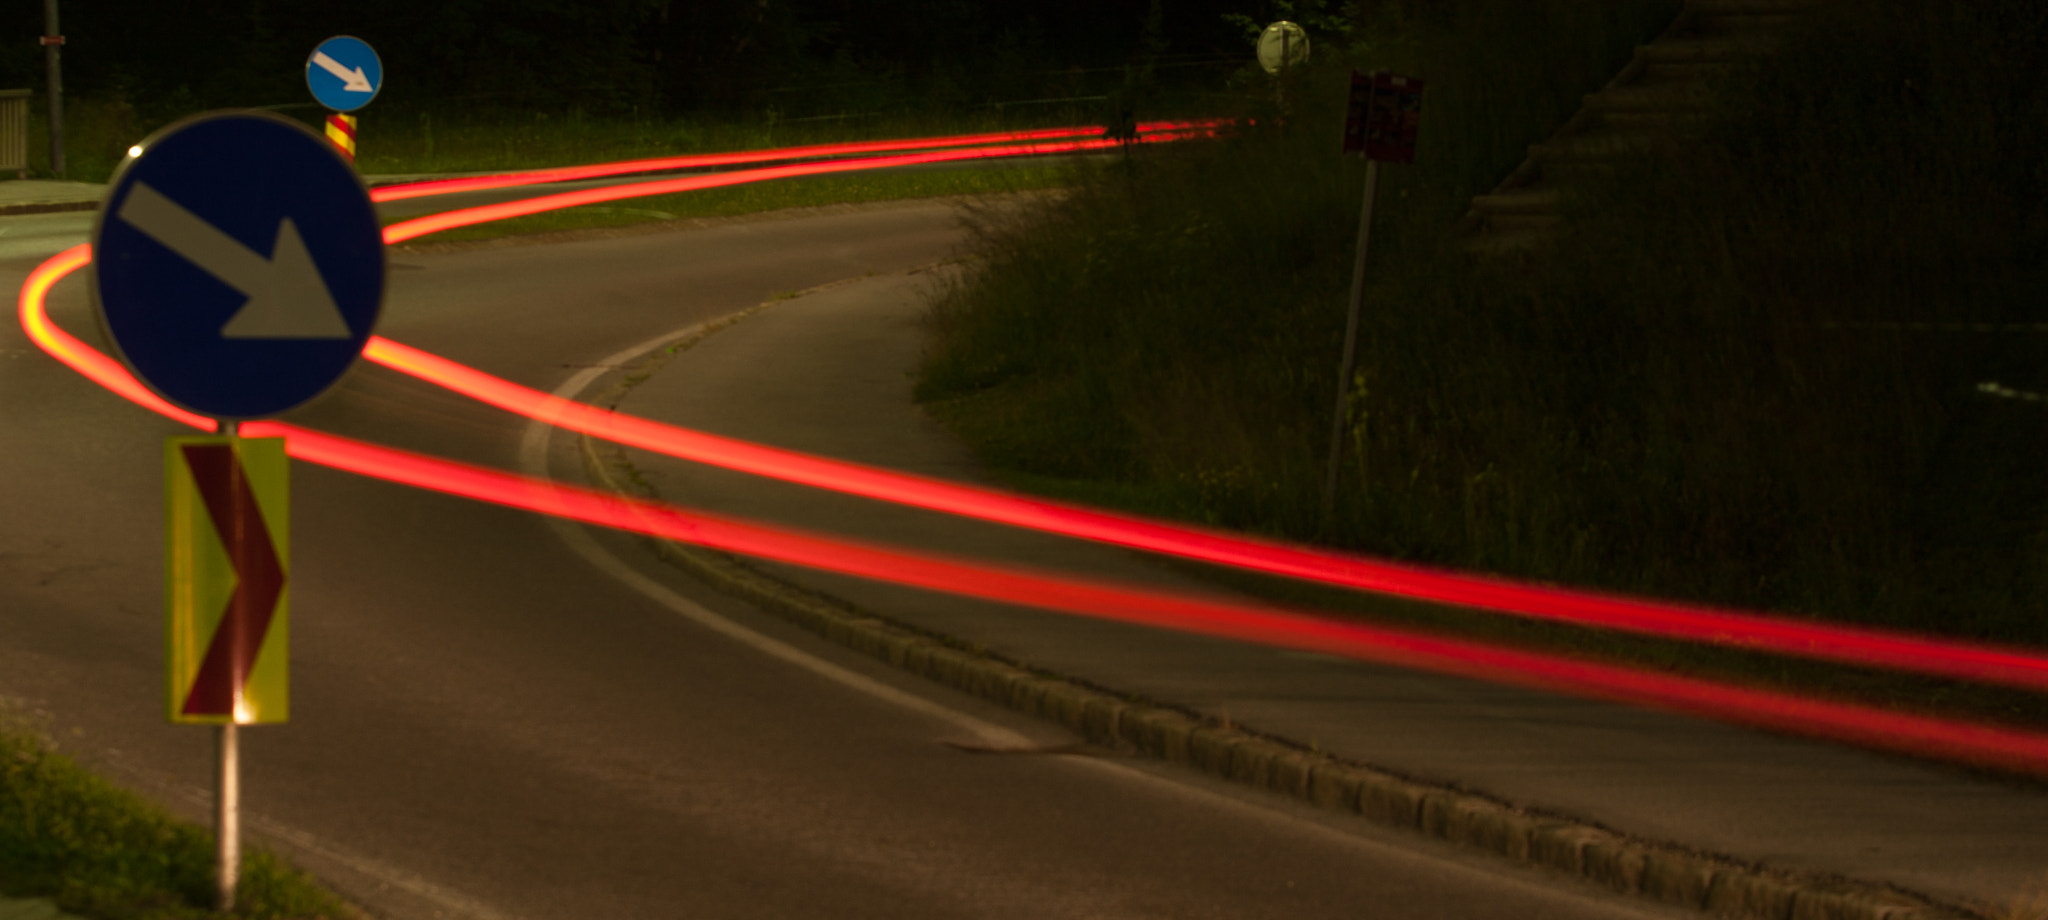 Photograph red bend by Frank Draeger on 500px